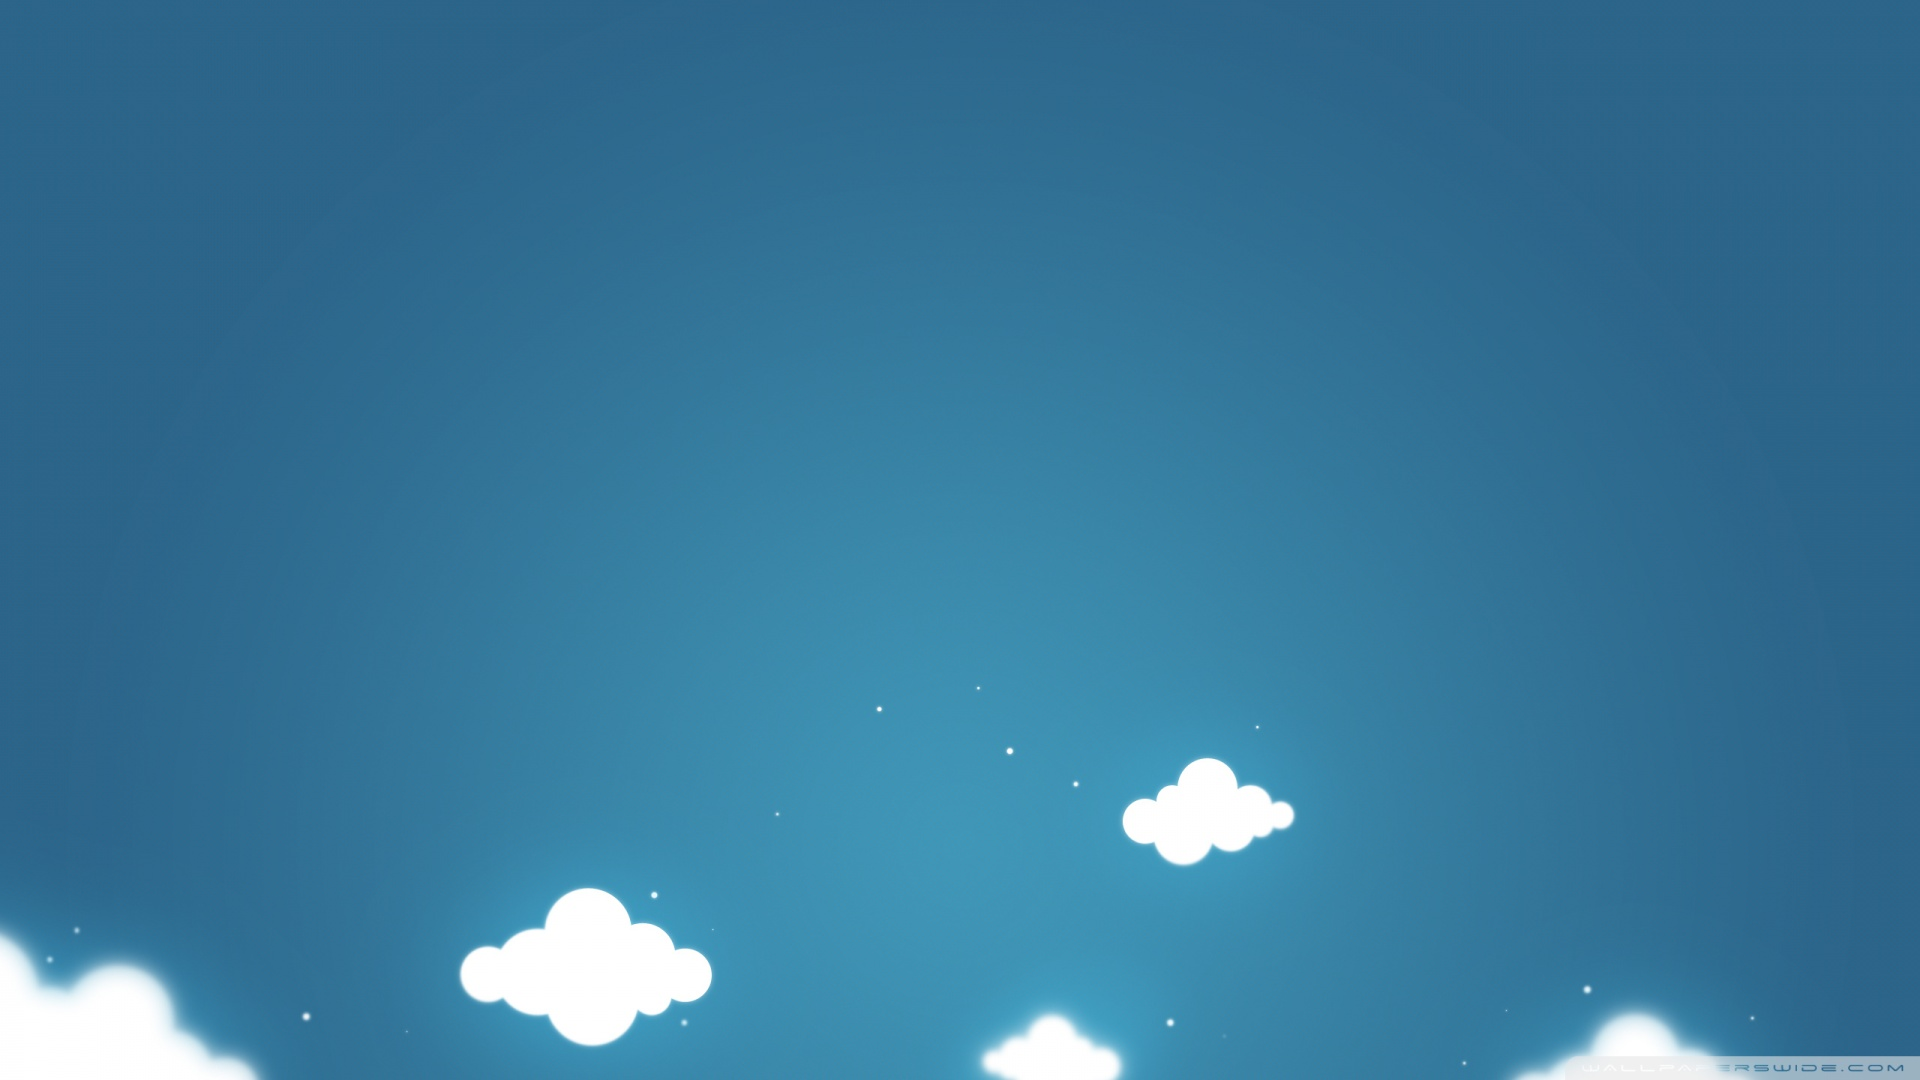 Clouds And Blue Sky Wallpaper 1920x1080 Cartoon Clouds And Blue 1920x1080